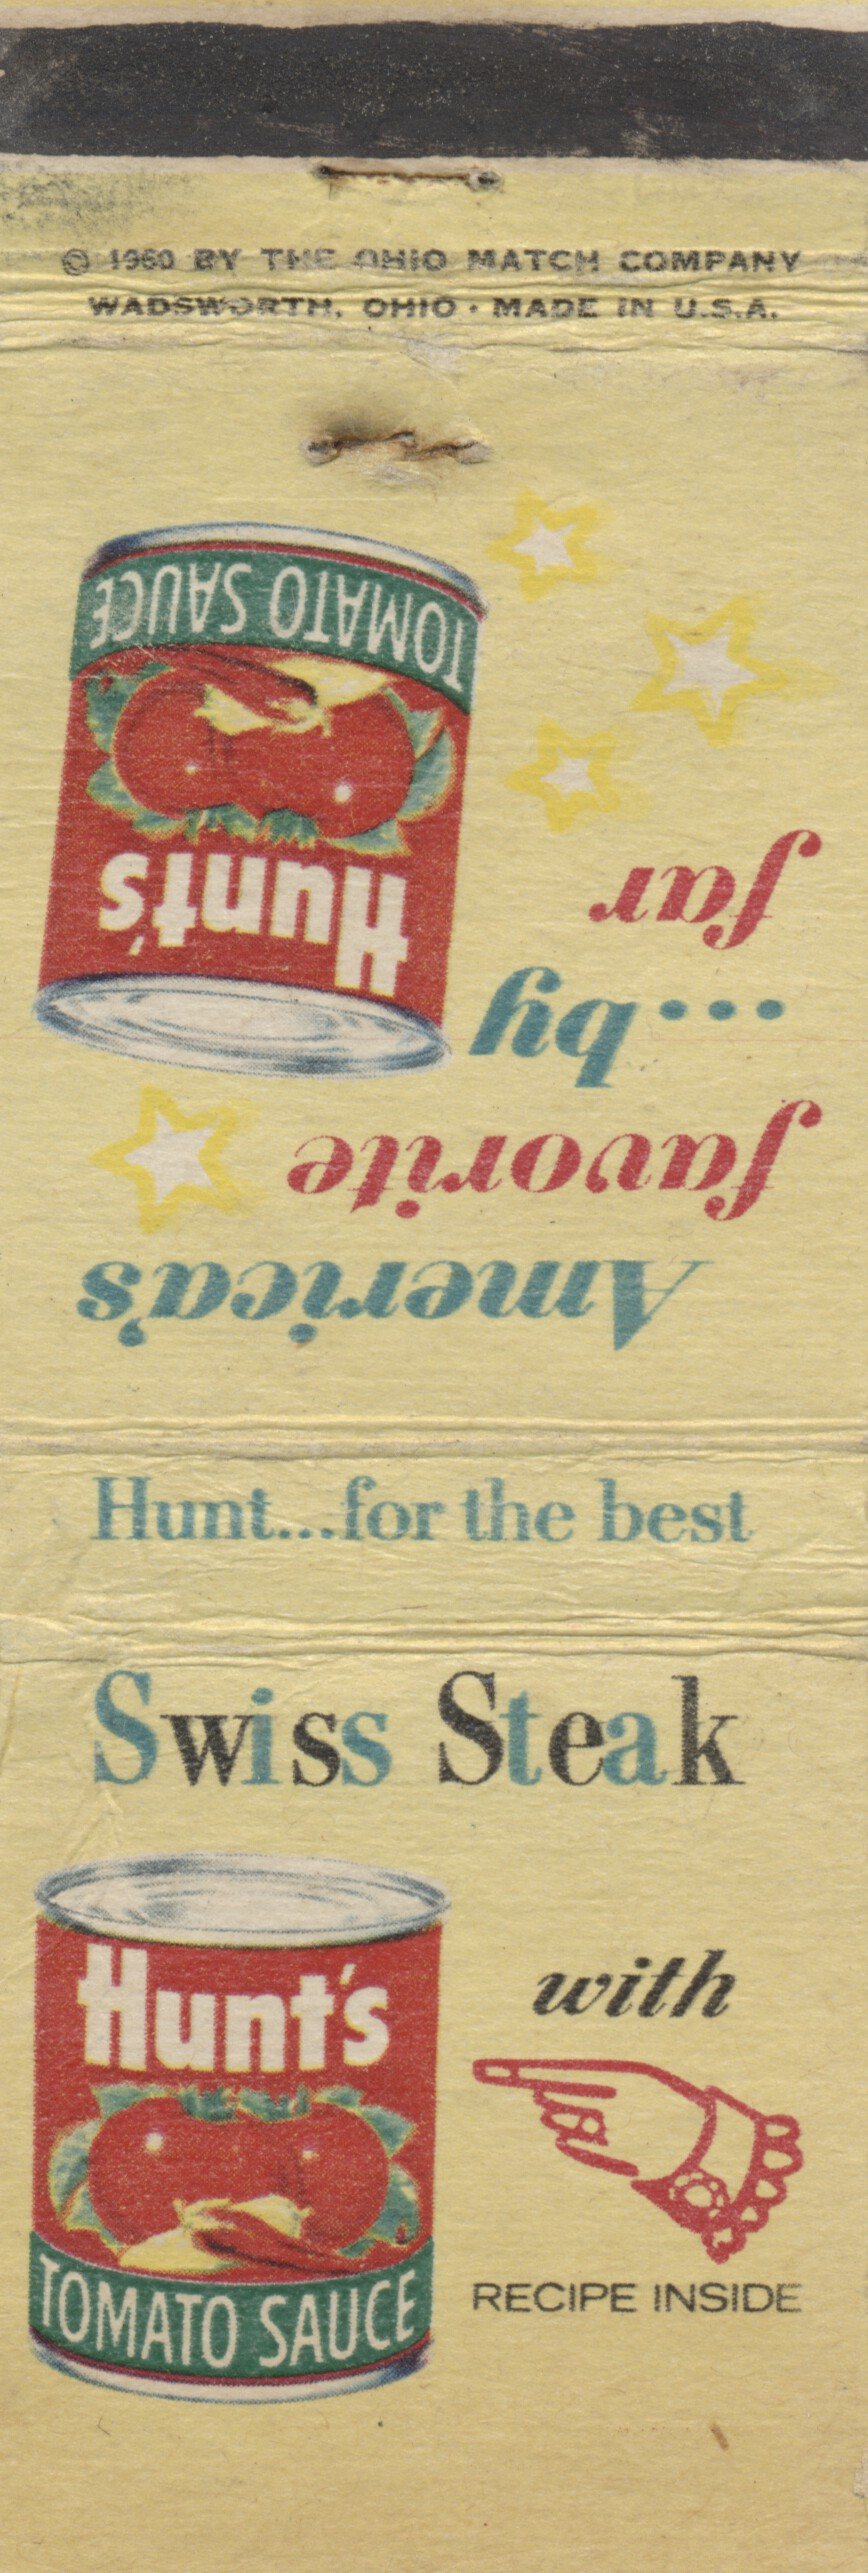 Hunt's Recipe Matchbooks, Vol. 4